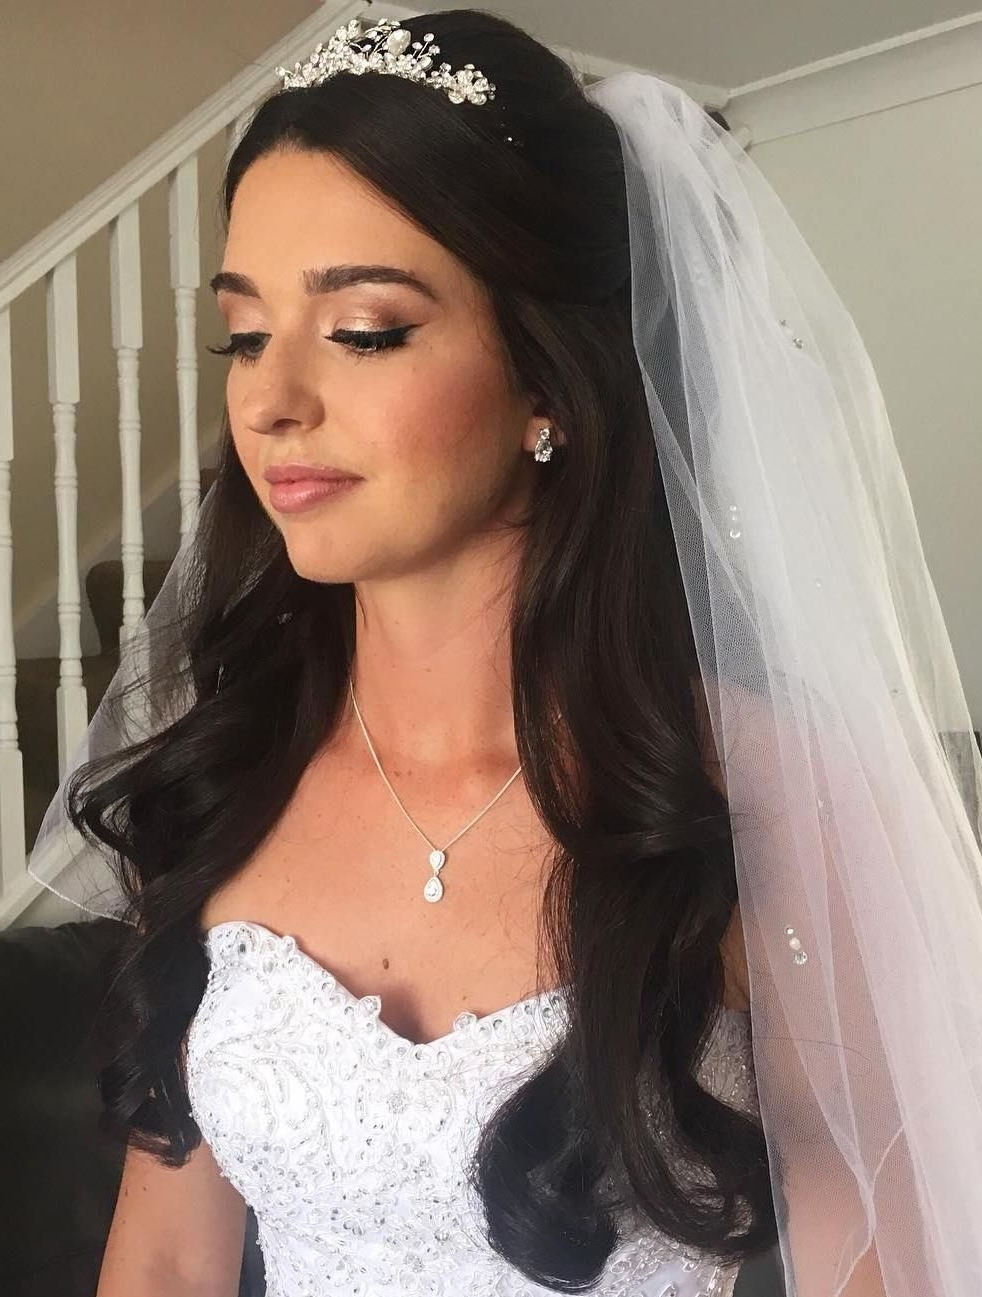 Widely Used Wedding Hairstyles For Long Hair With Veils And Tiaras For Half Up Half Down Wedding Hairstyles – 50 Stylish Ideas For Brides (View 3 of 15)